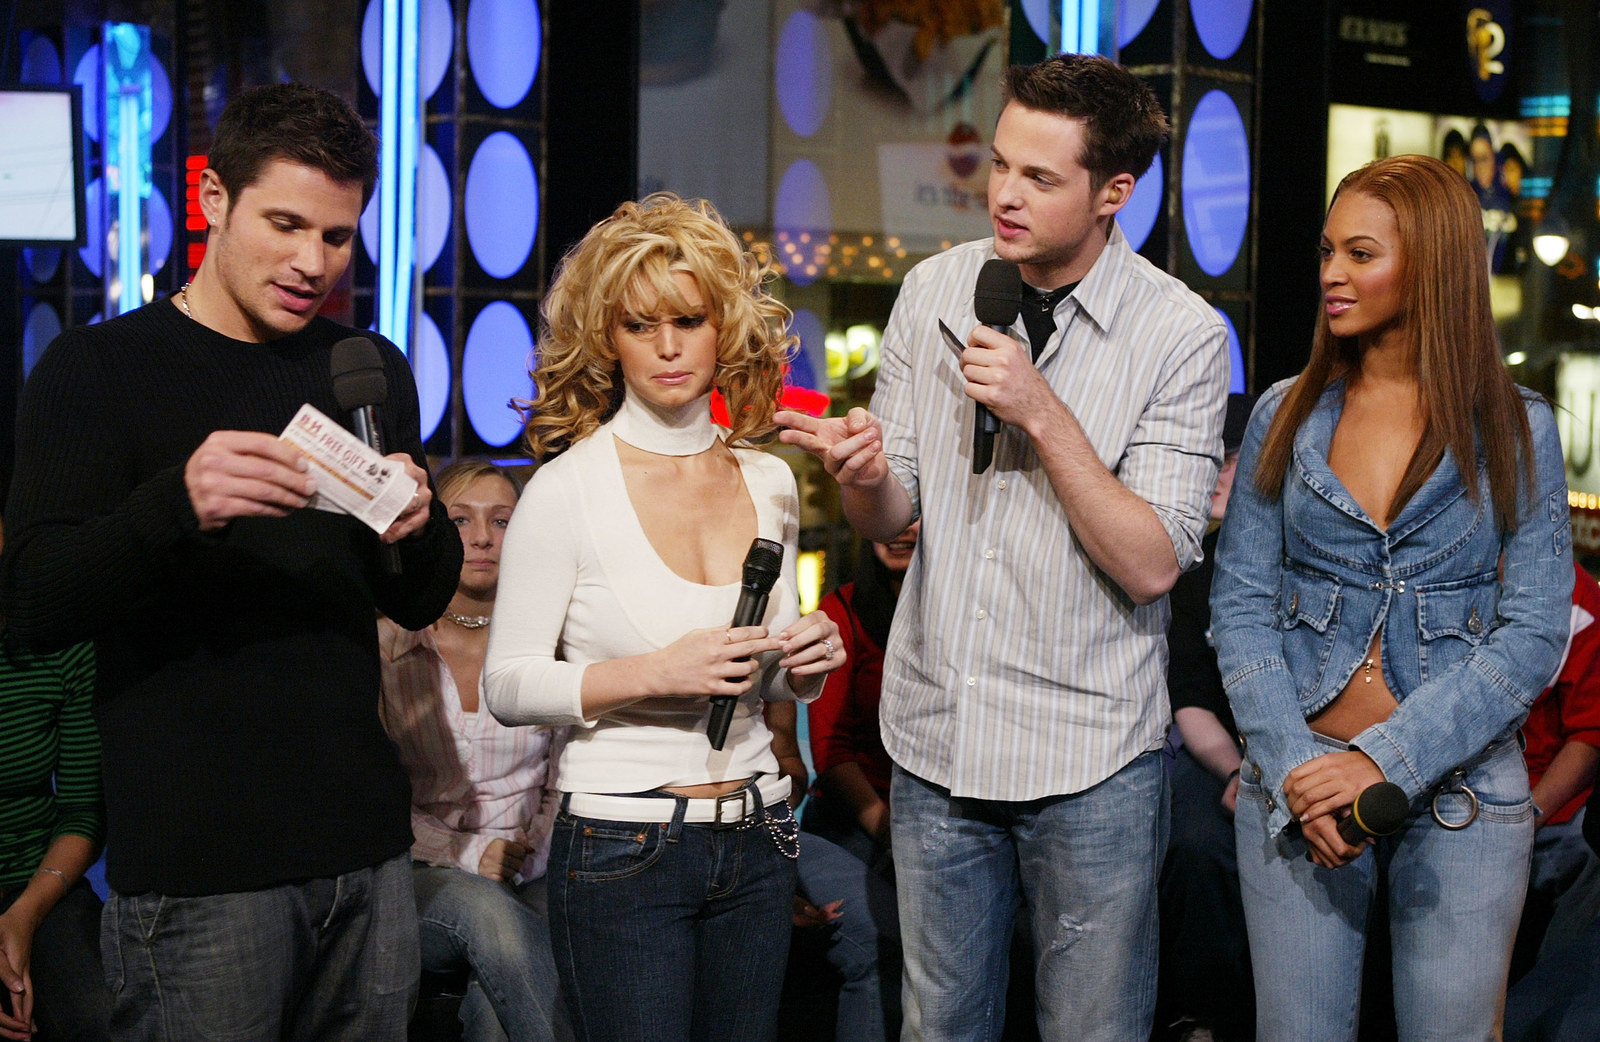 With failed couple, Nick Lachey and Jessica Simpson.